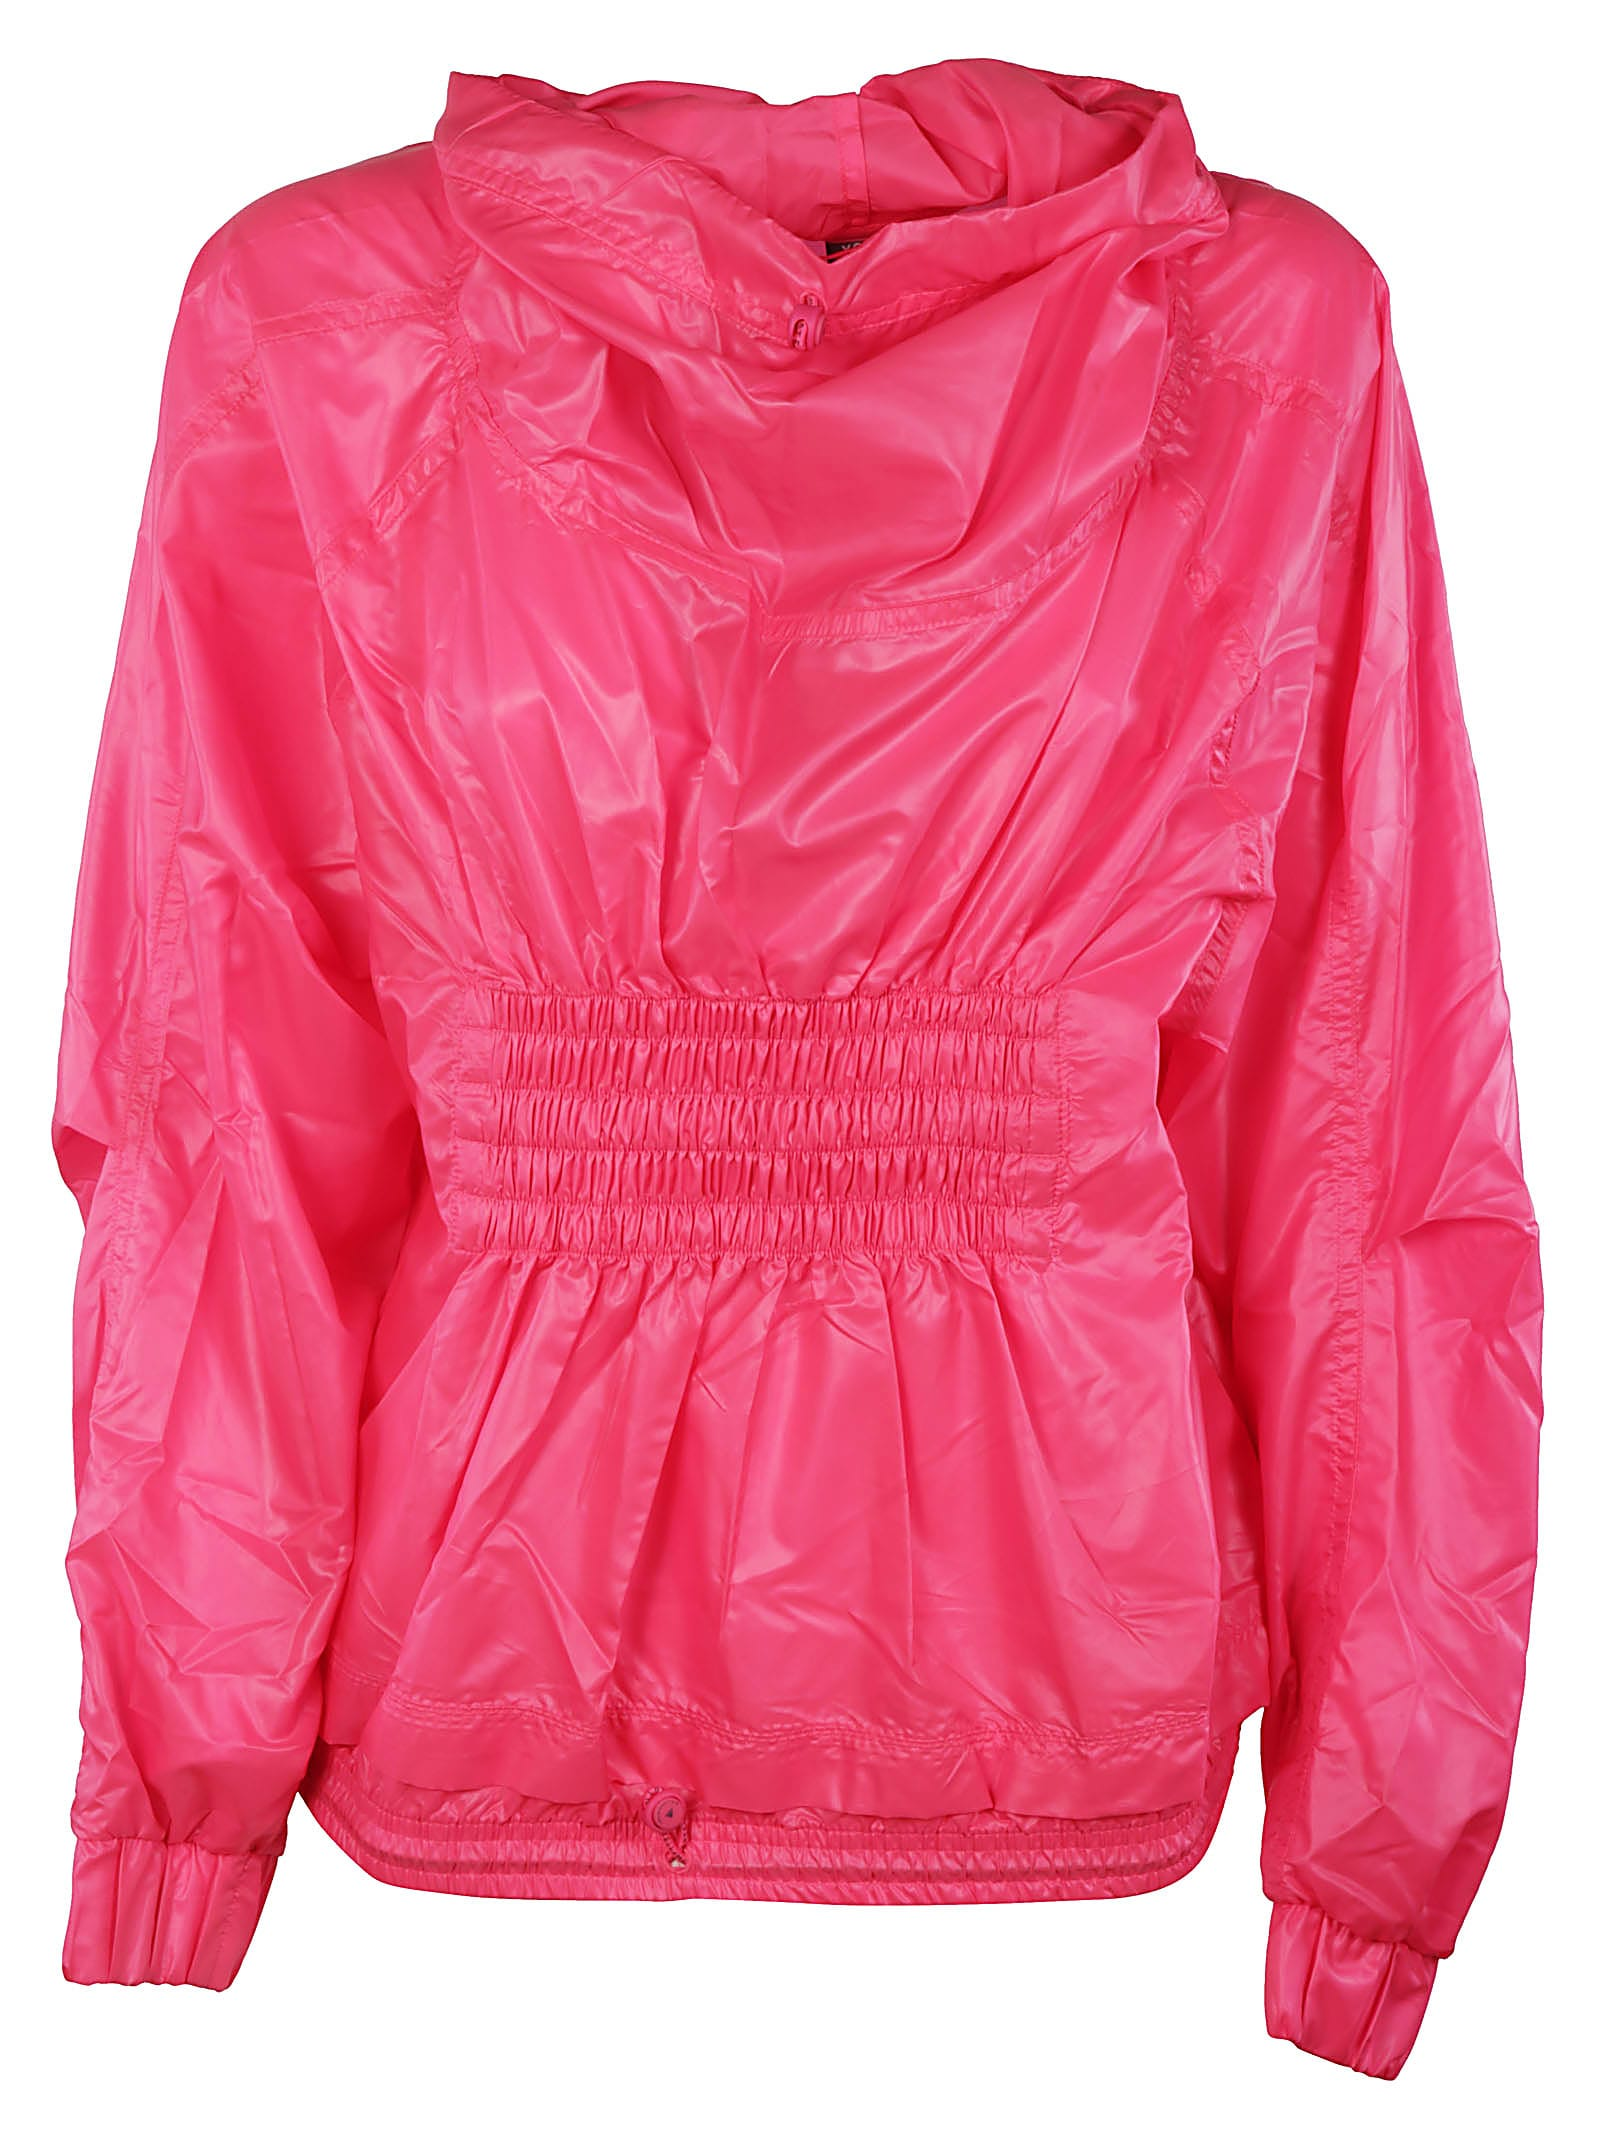 Adidas Essentials Raincoat